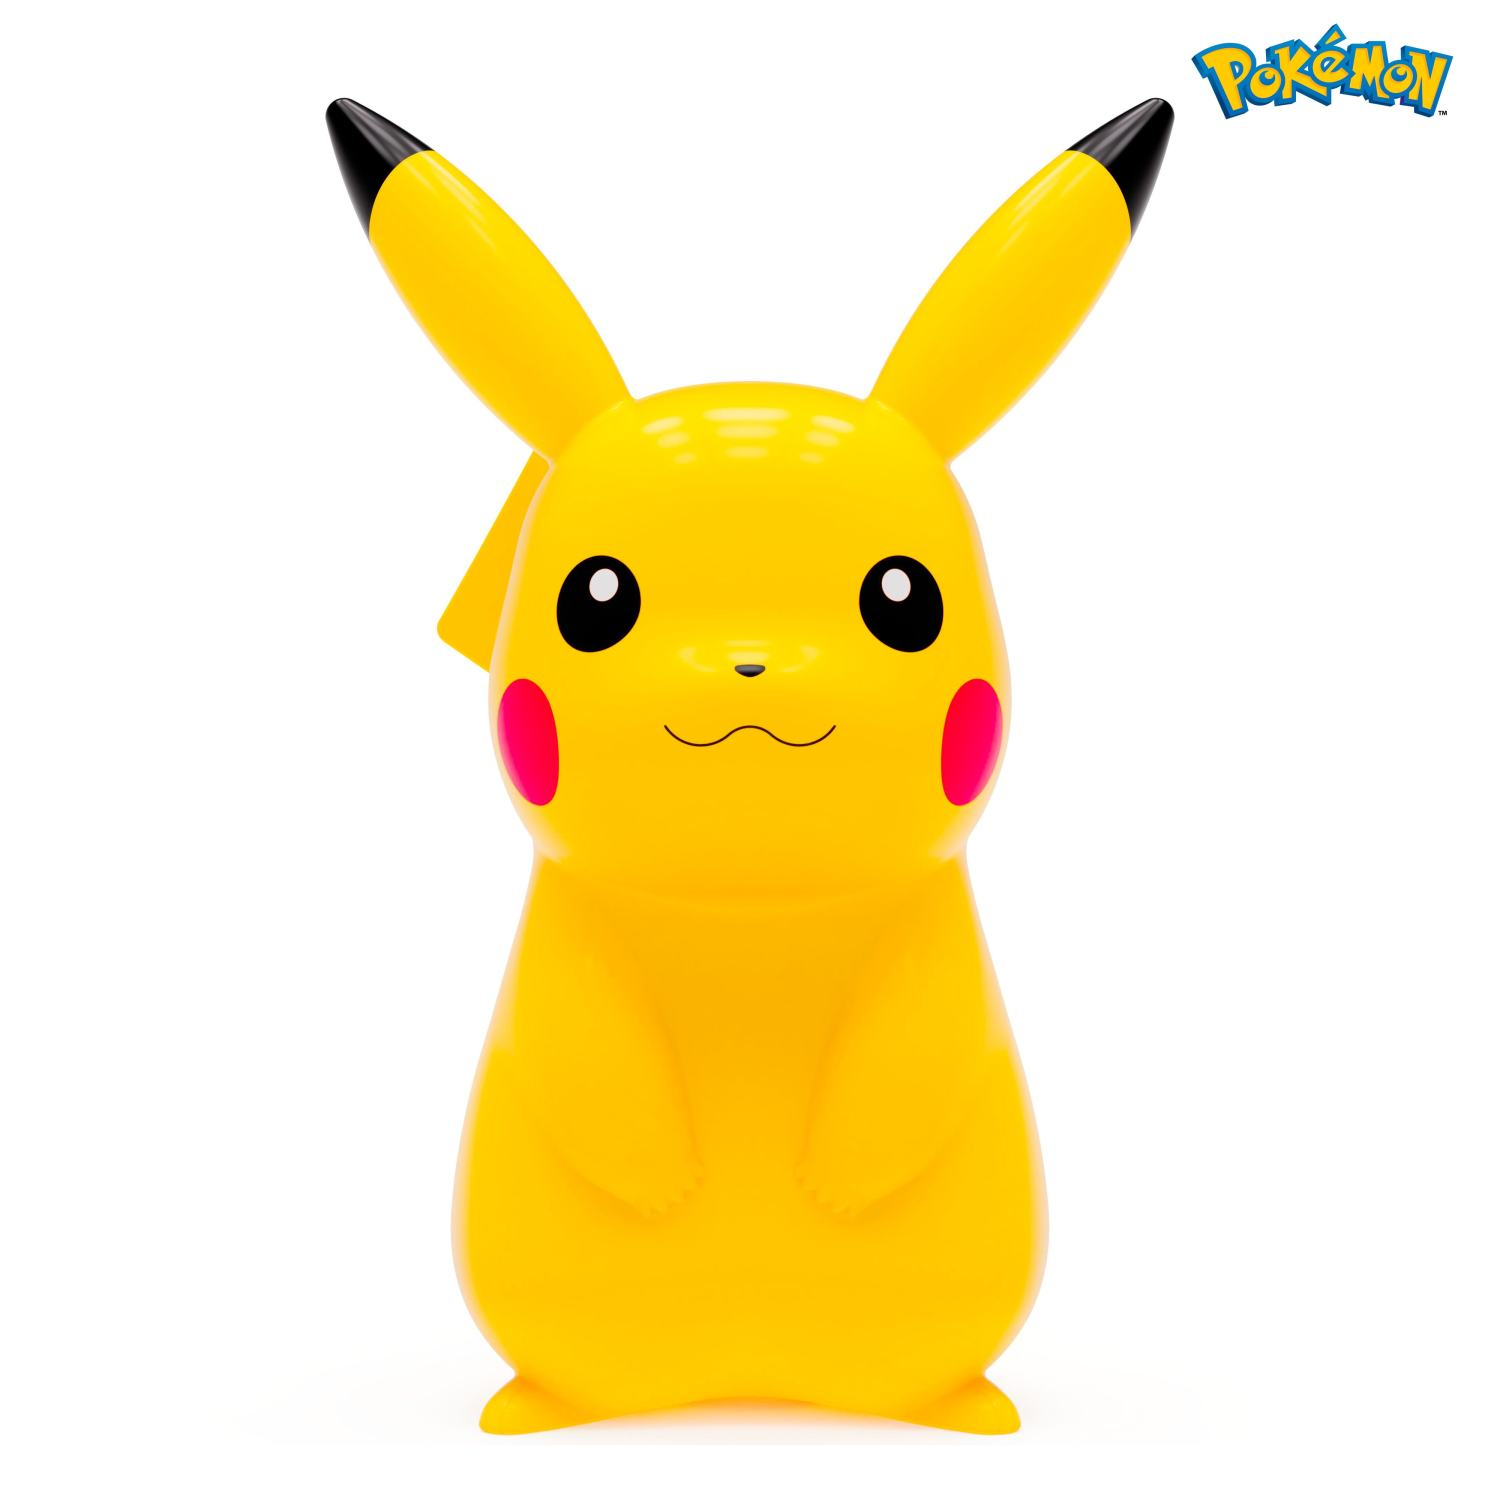 Pokémon Pikachu LED Lamp 31in 1